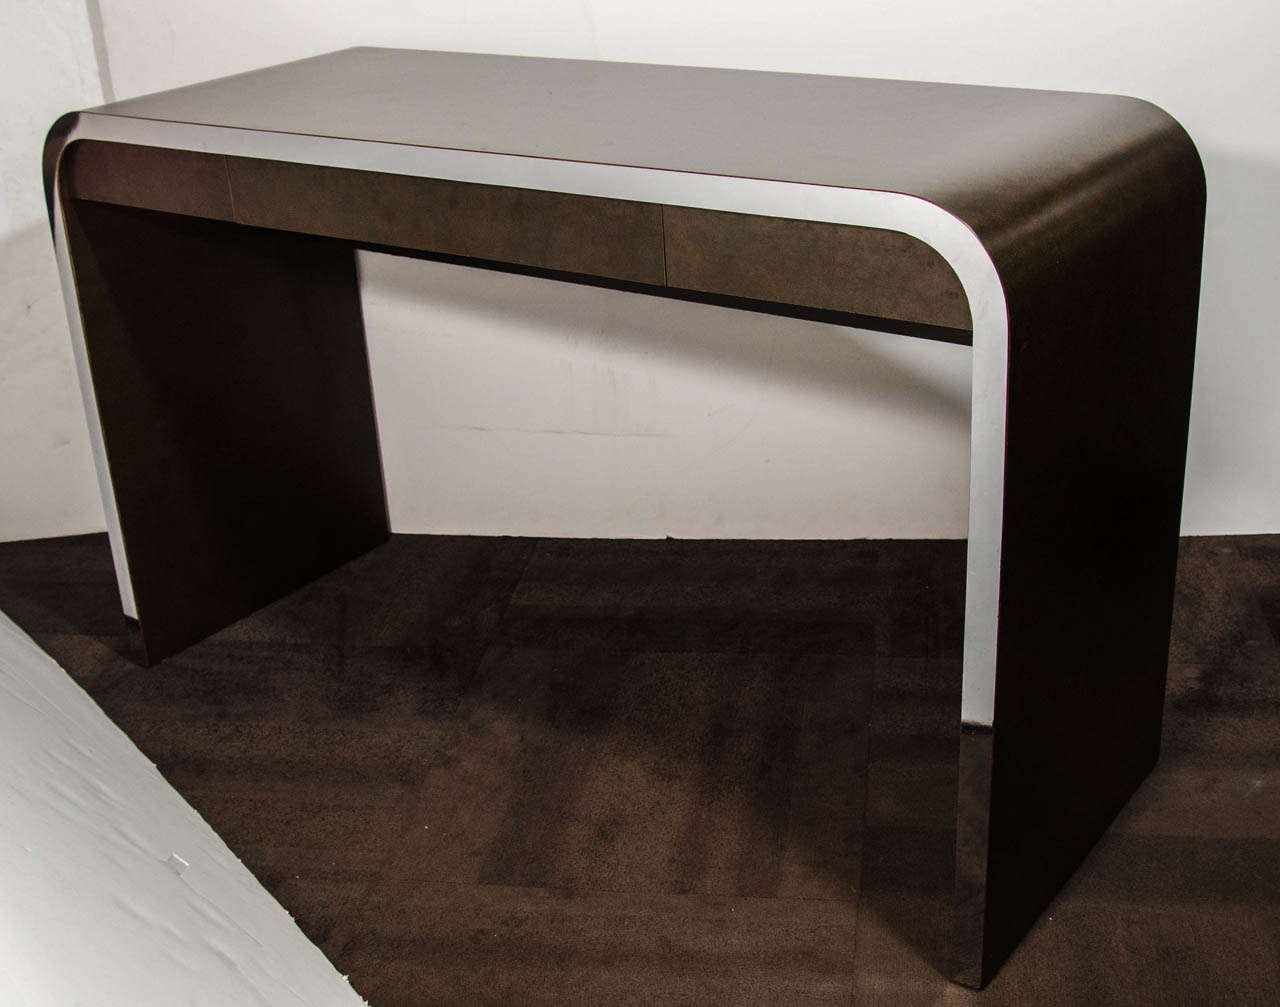 Modernist writing table and console table in dark burled wood laminate with stylized chrome banded details. The table has a waterfall design with streamline curved edges, and is conveniently fitted with a narrow center drawer. The console is